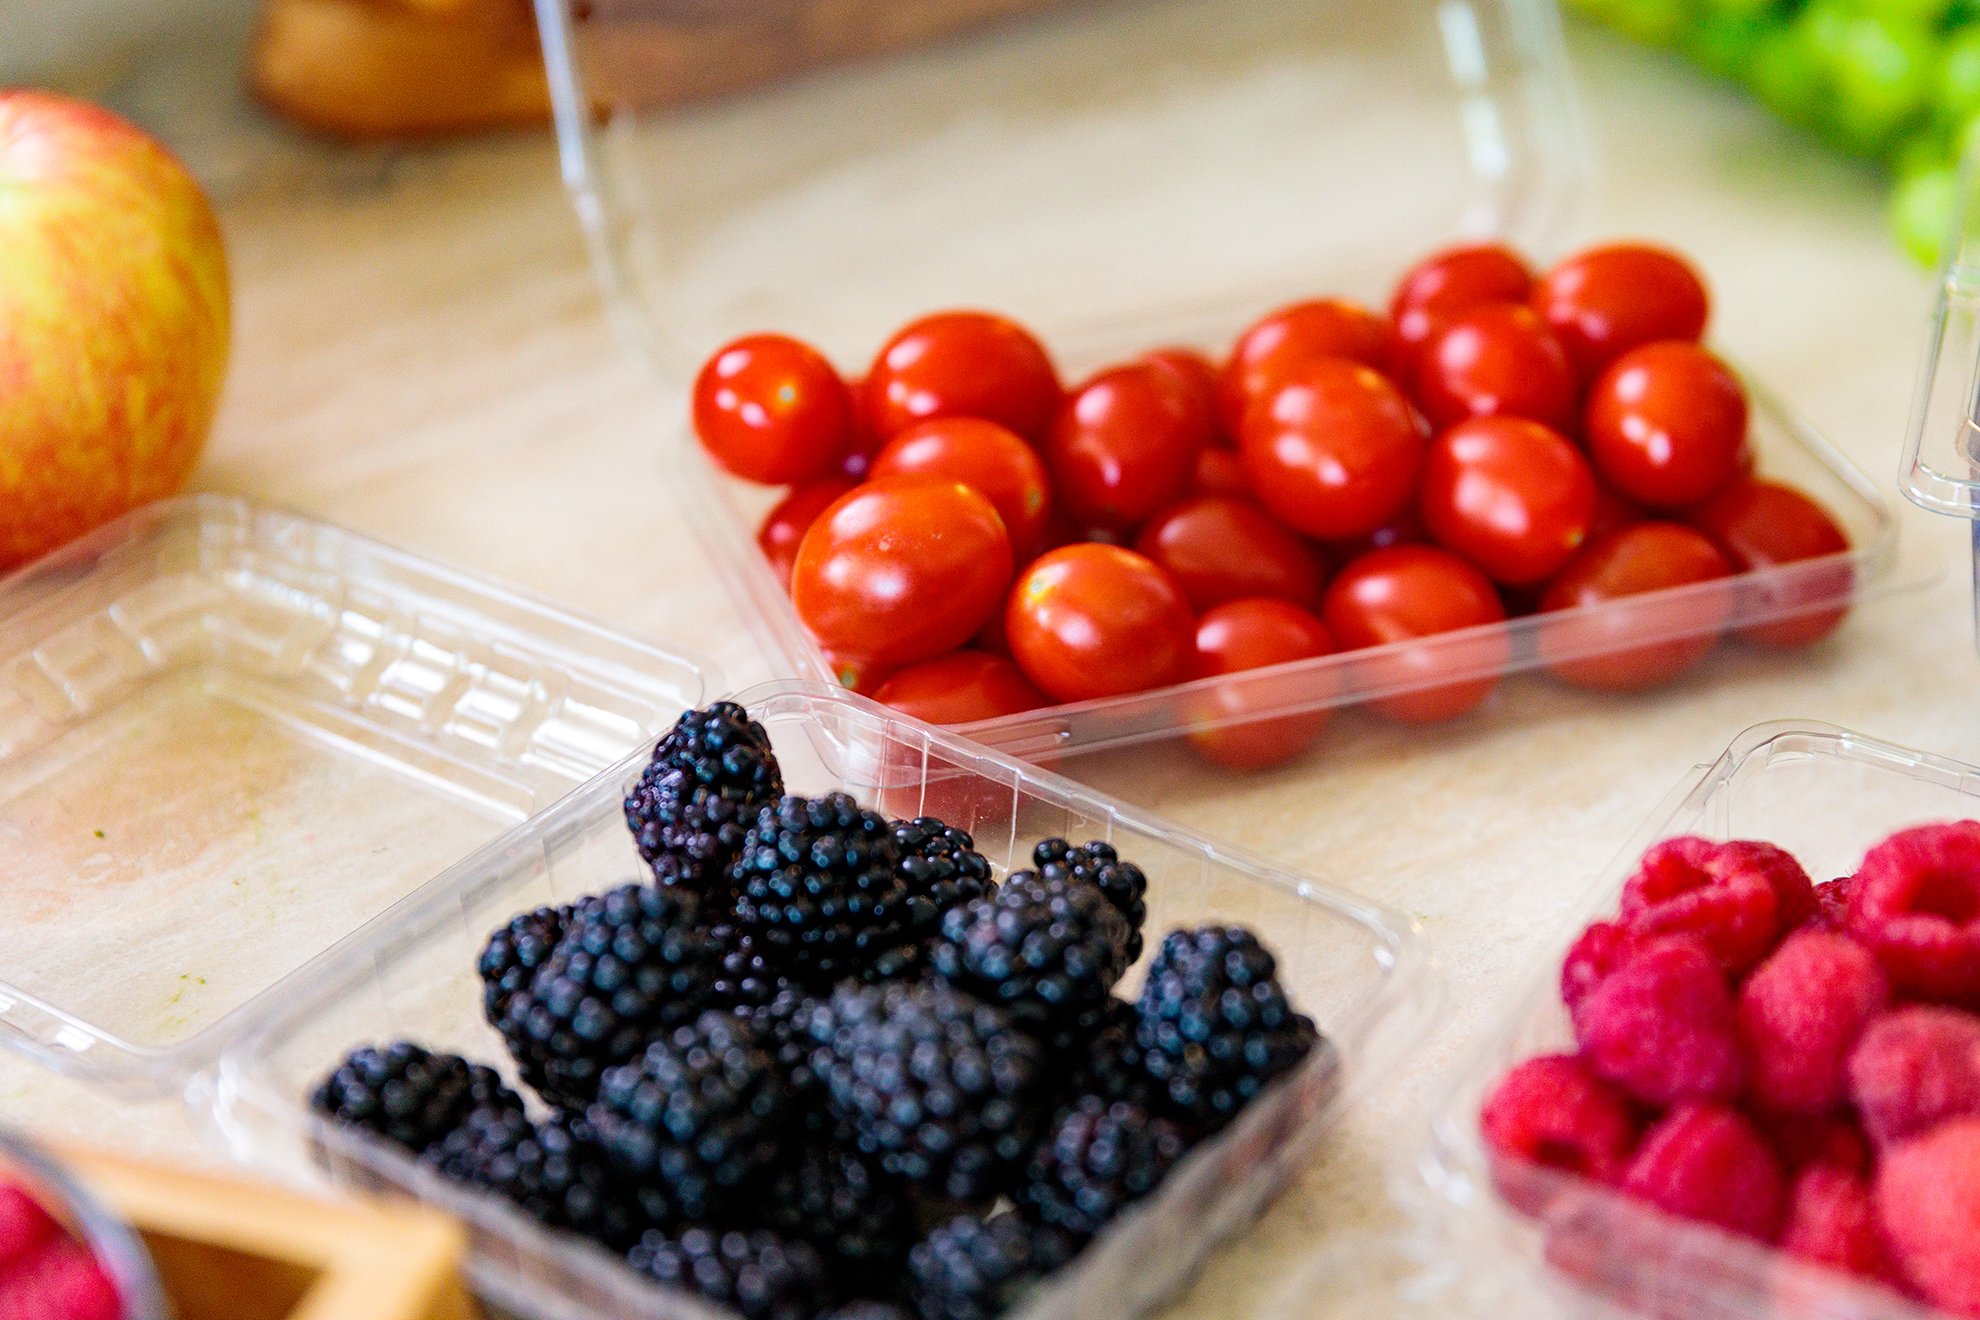 Fruit in clamshell containers